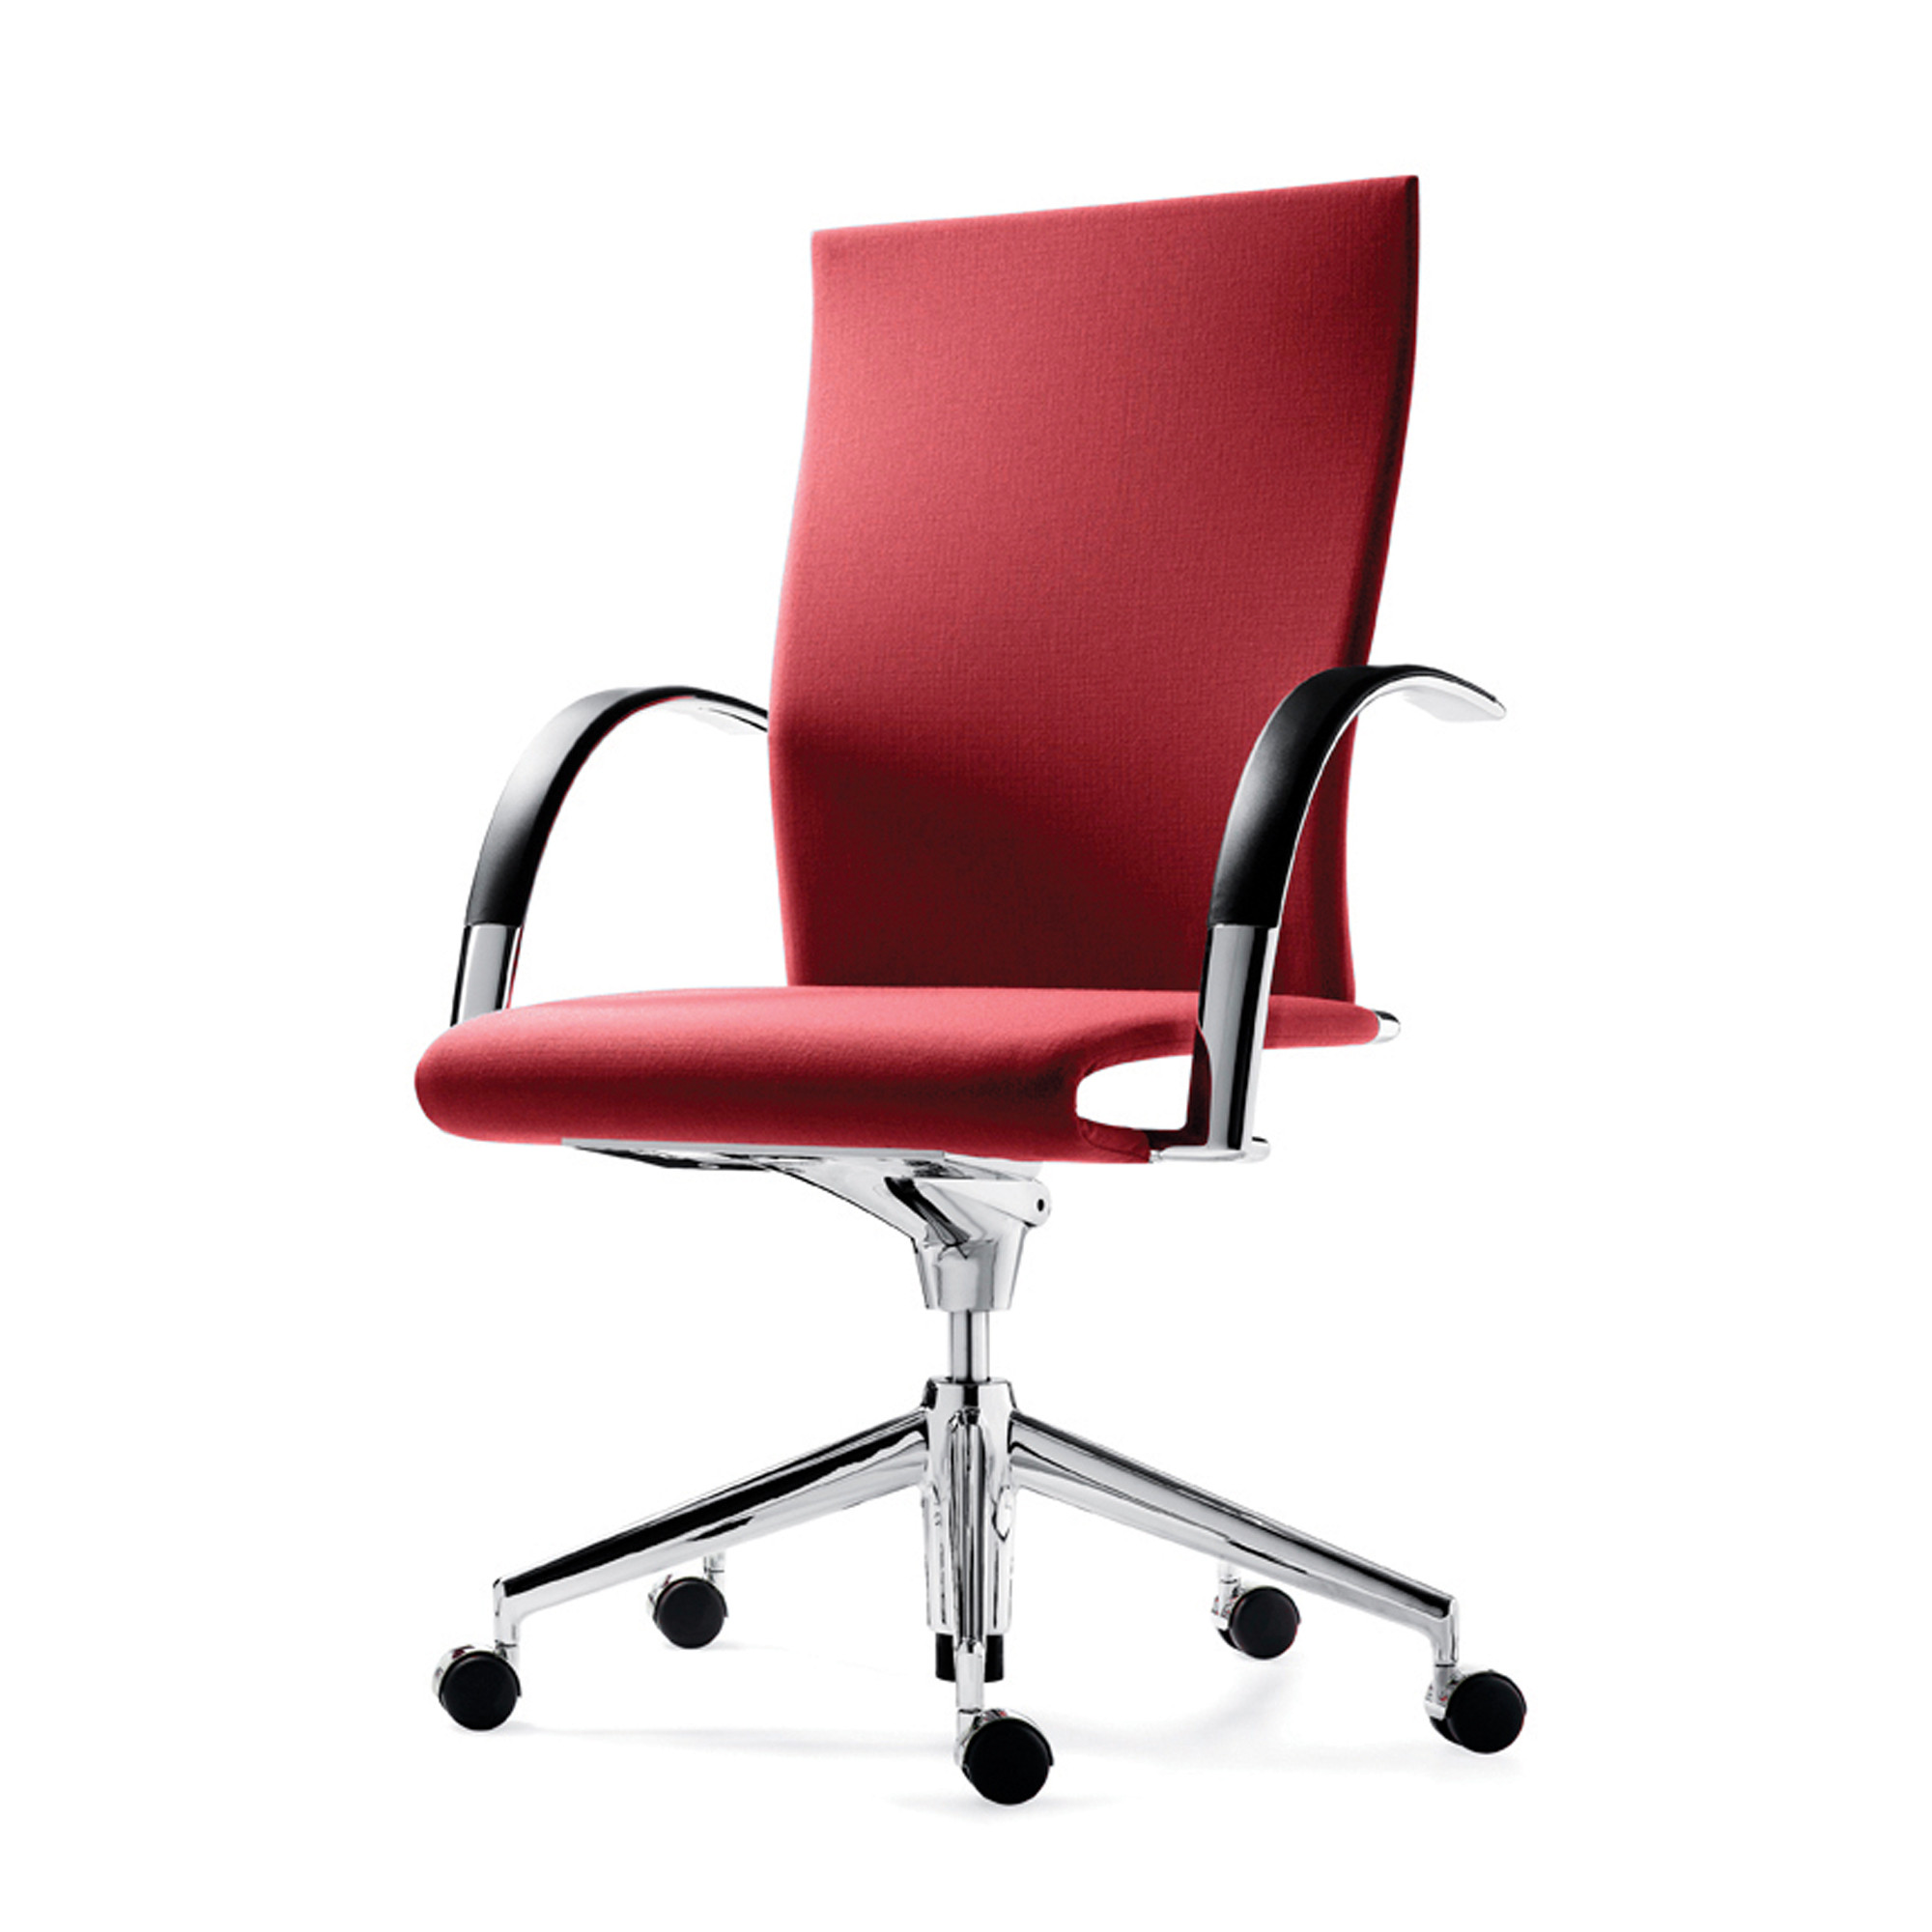 Ahrend 350 Executive Chairs